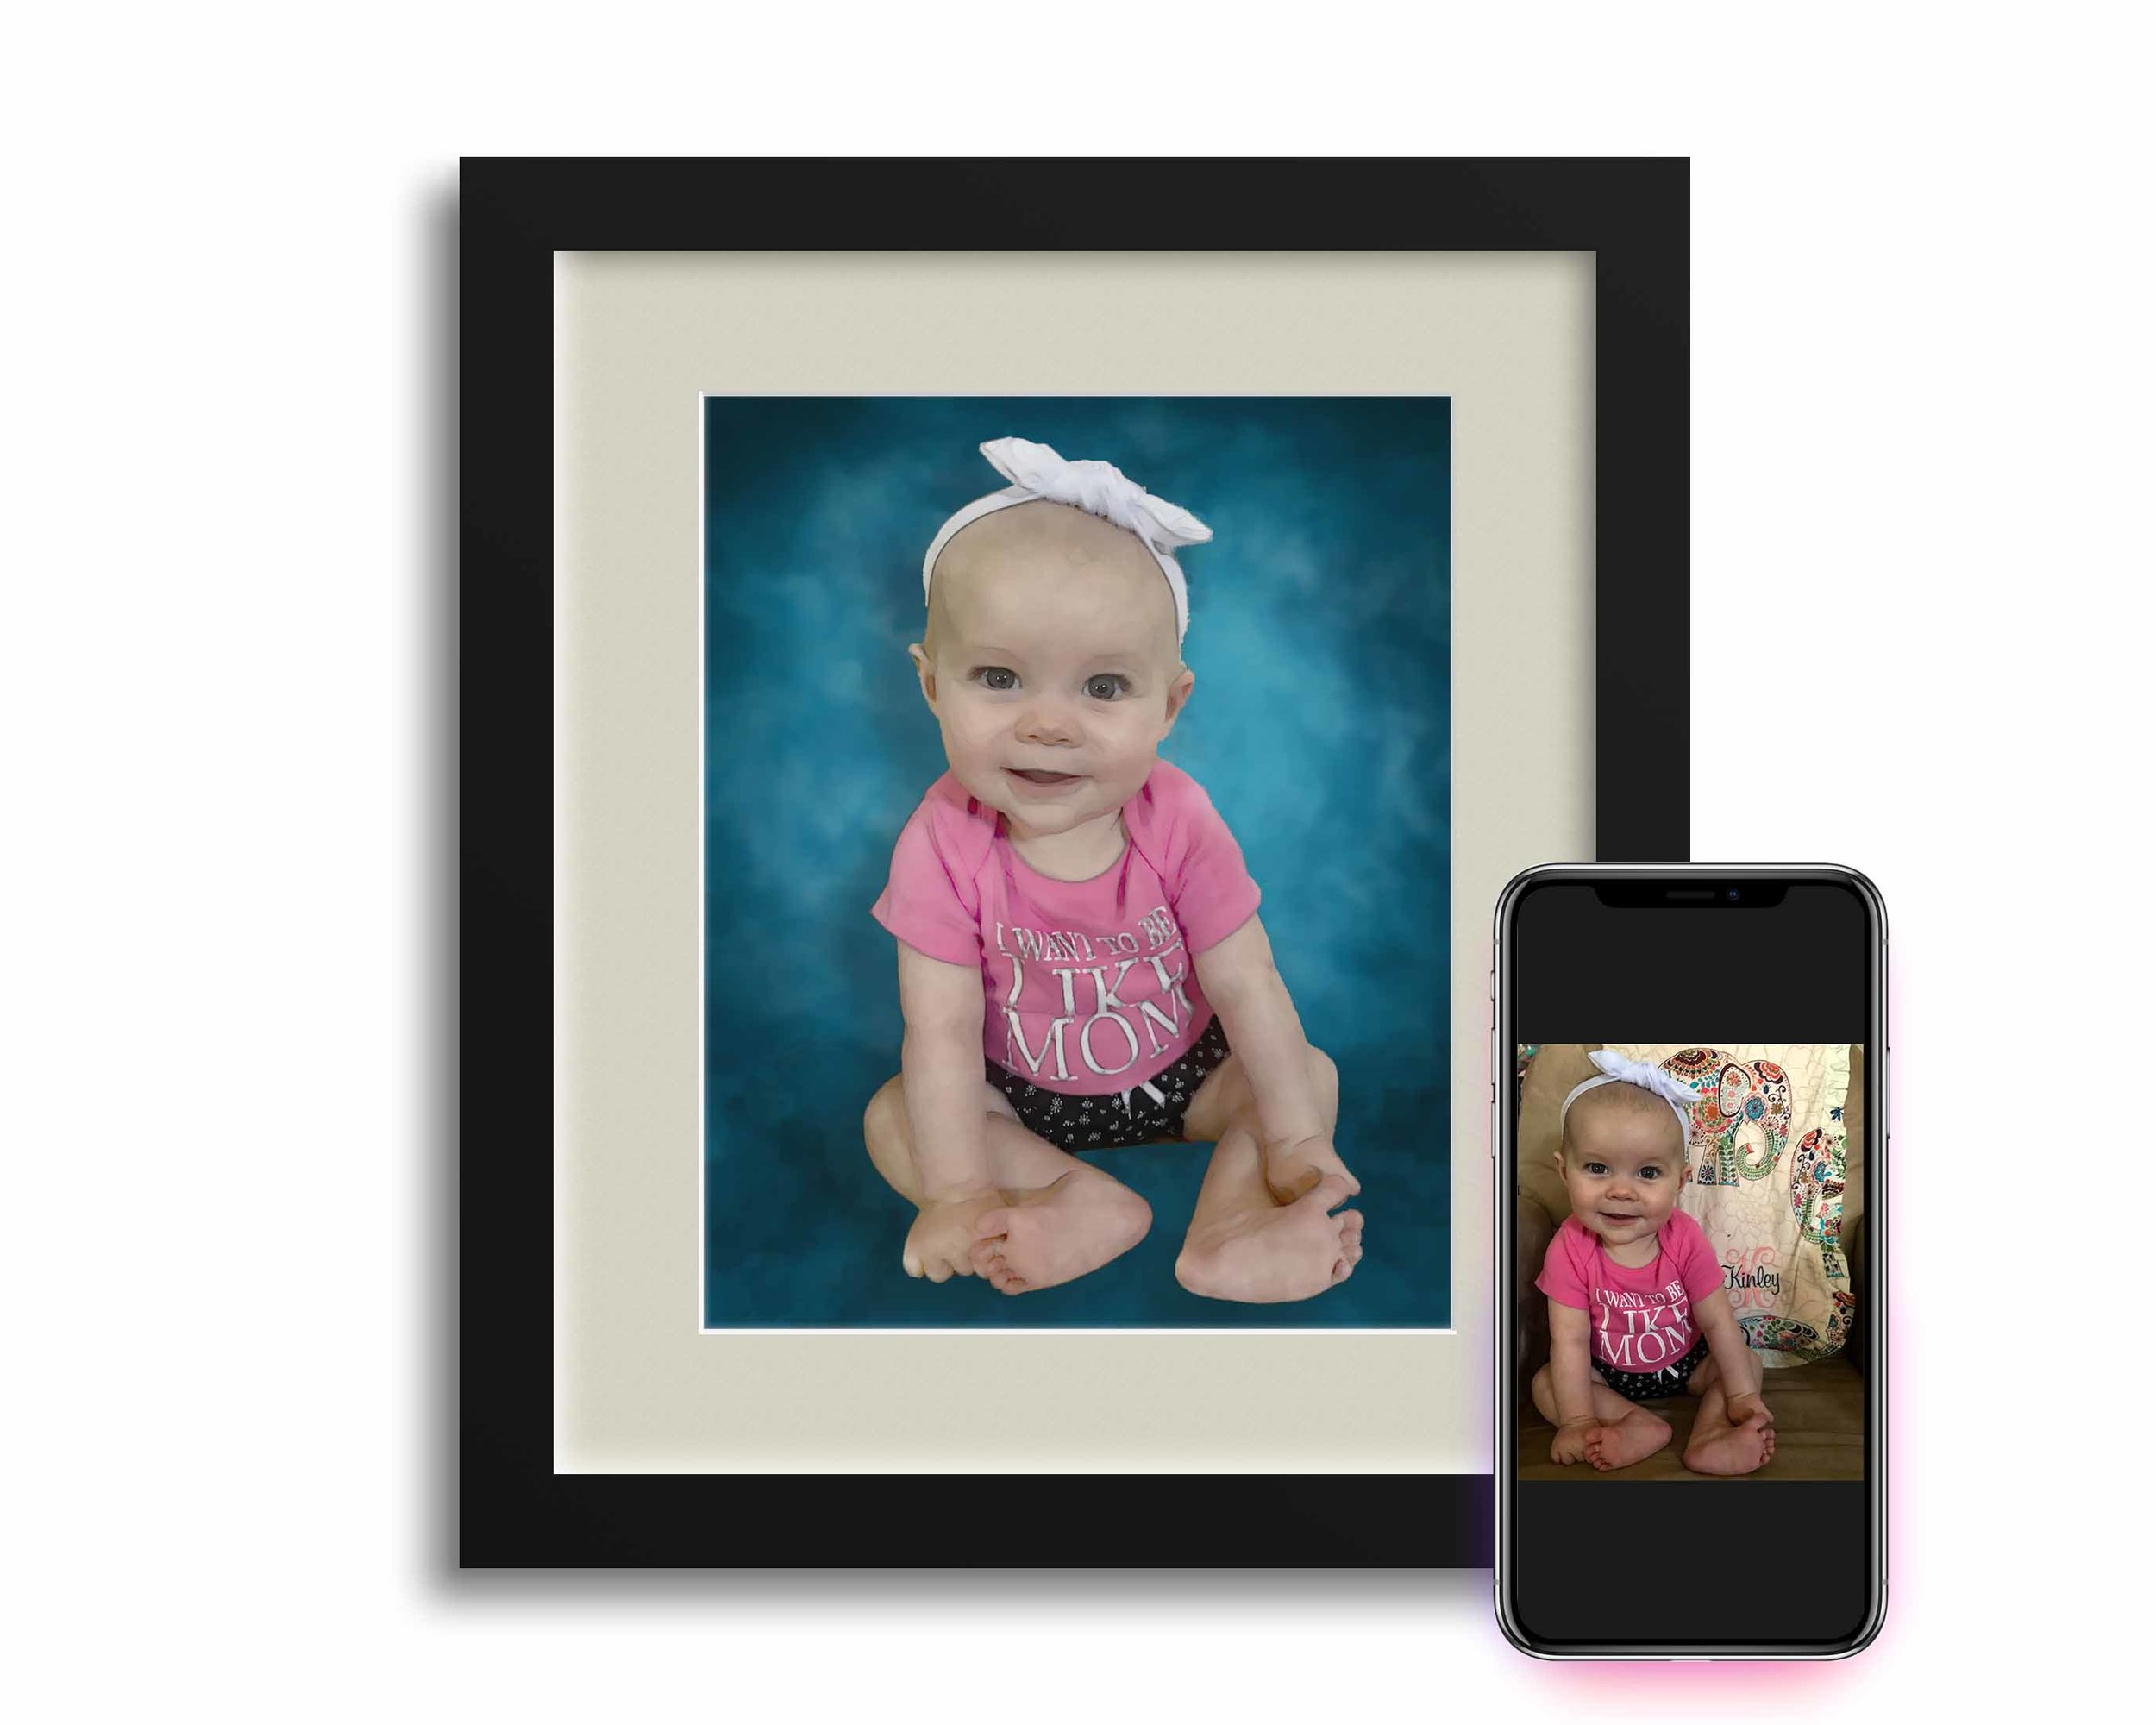 Jessica wanted to surprise her husband with framed rendering of their favorite photo for his birthday and to hangto hang in their new home.